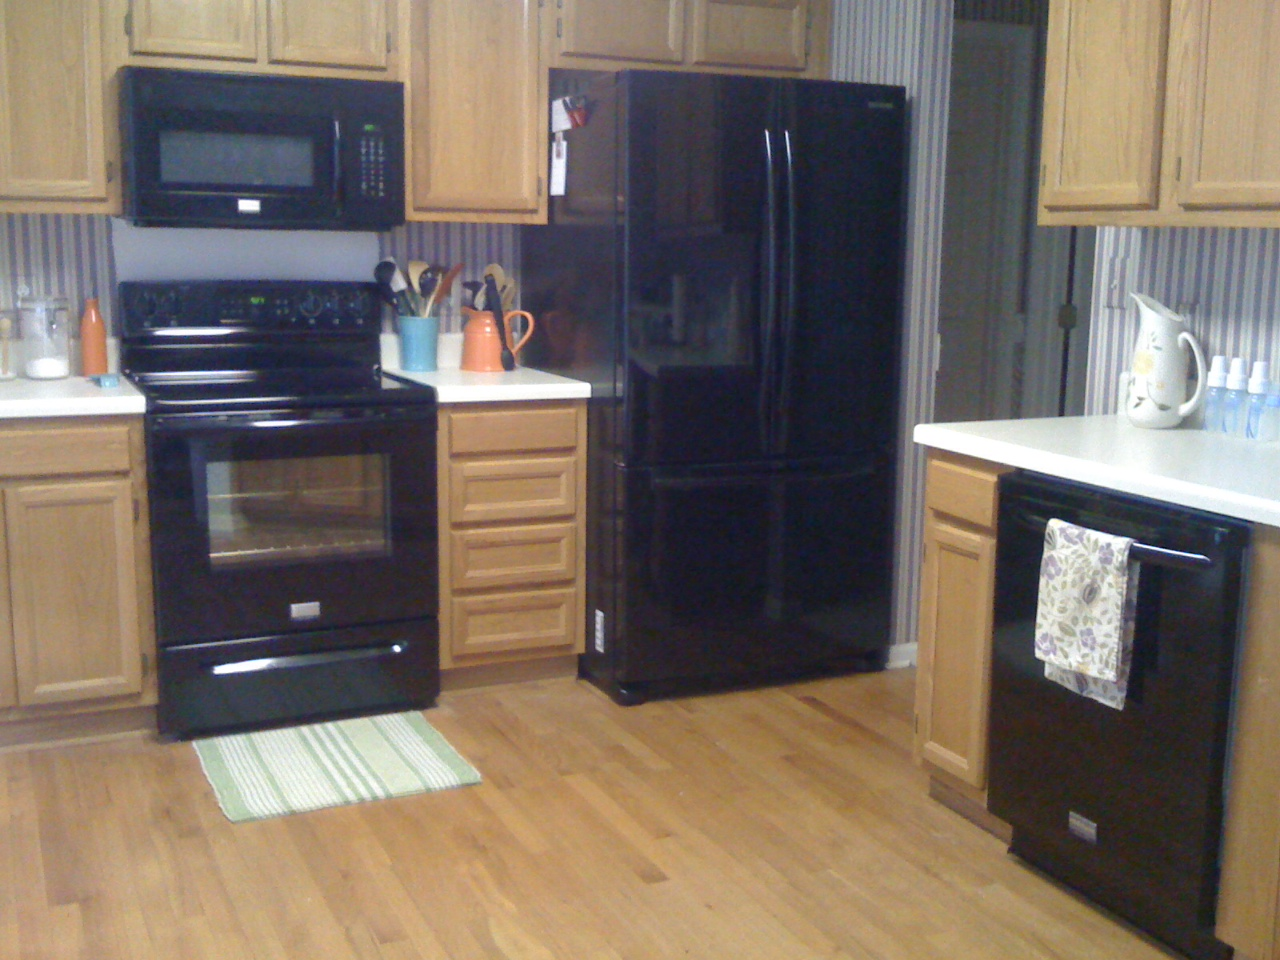 Kitchen Appliances Black Kitchen Appliances